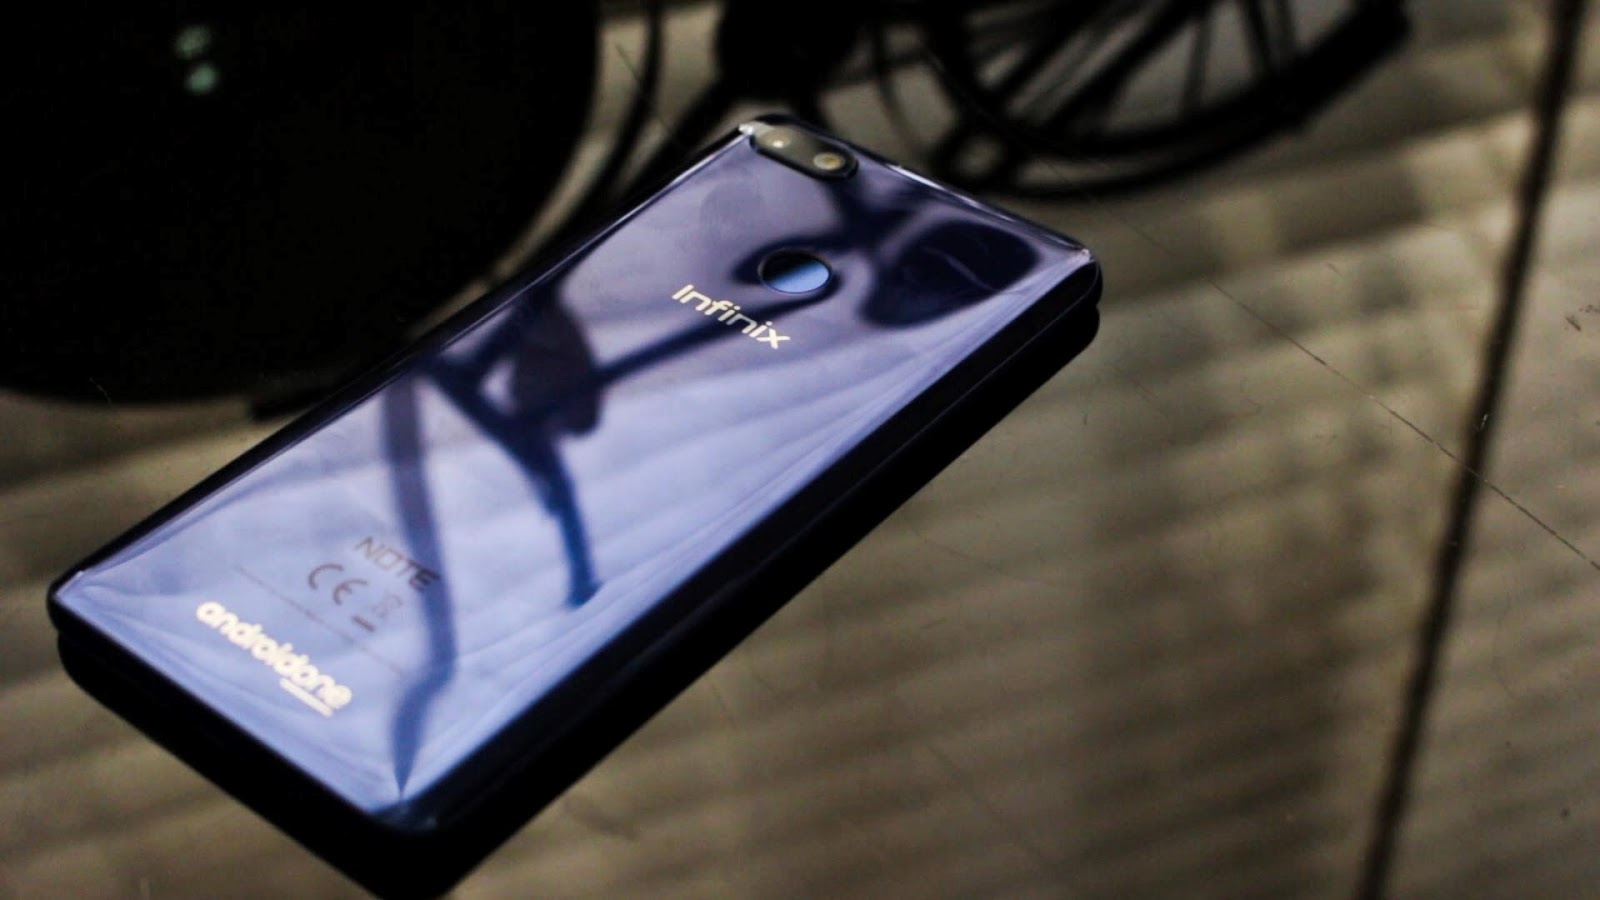 Most frequently asked questions on the Infinix Note 5 and Note 5 Stylus